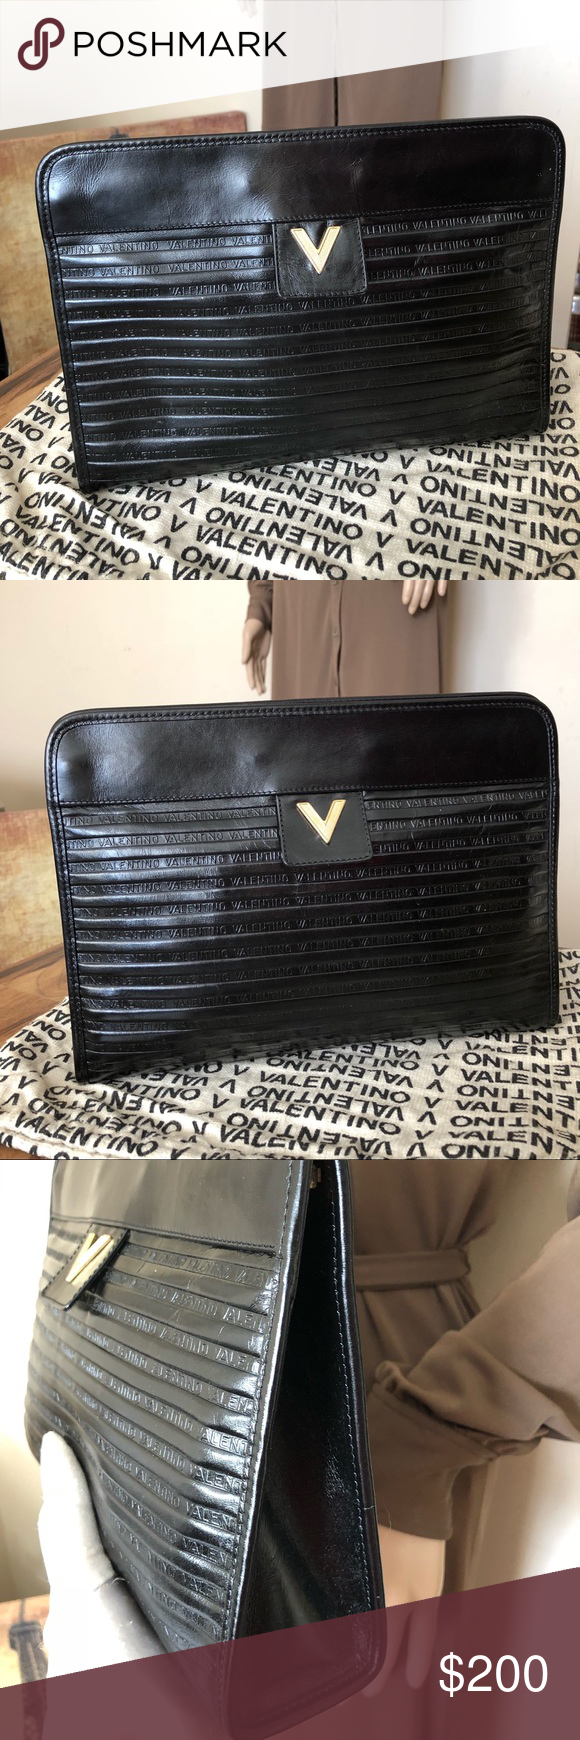 54c4363d097 Mario Valentino Black Logo Embossed Vintage Clutch This vintage black  leather clutch is designed with the